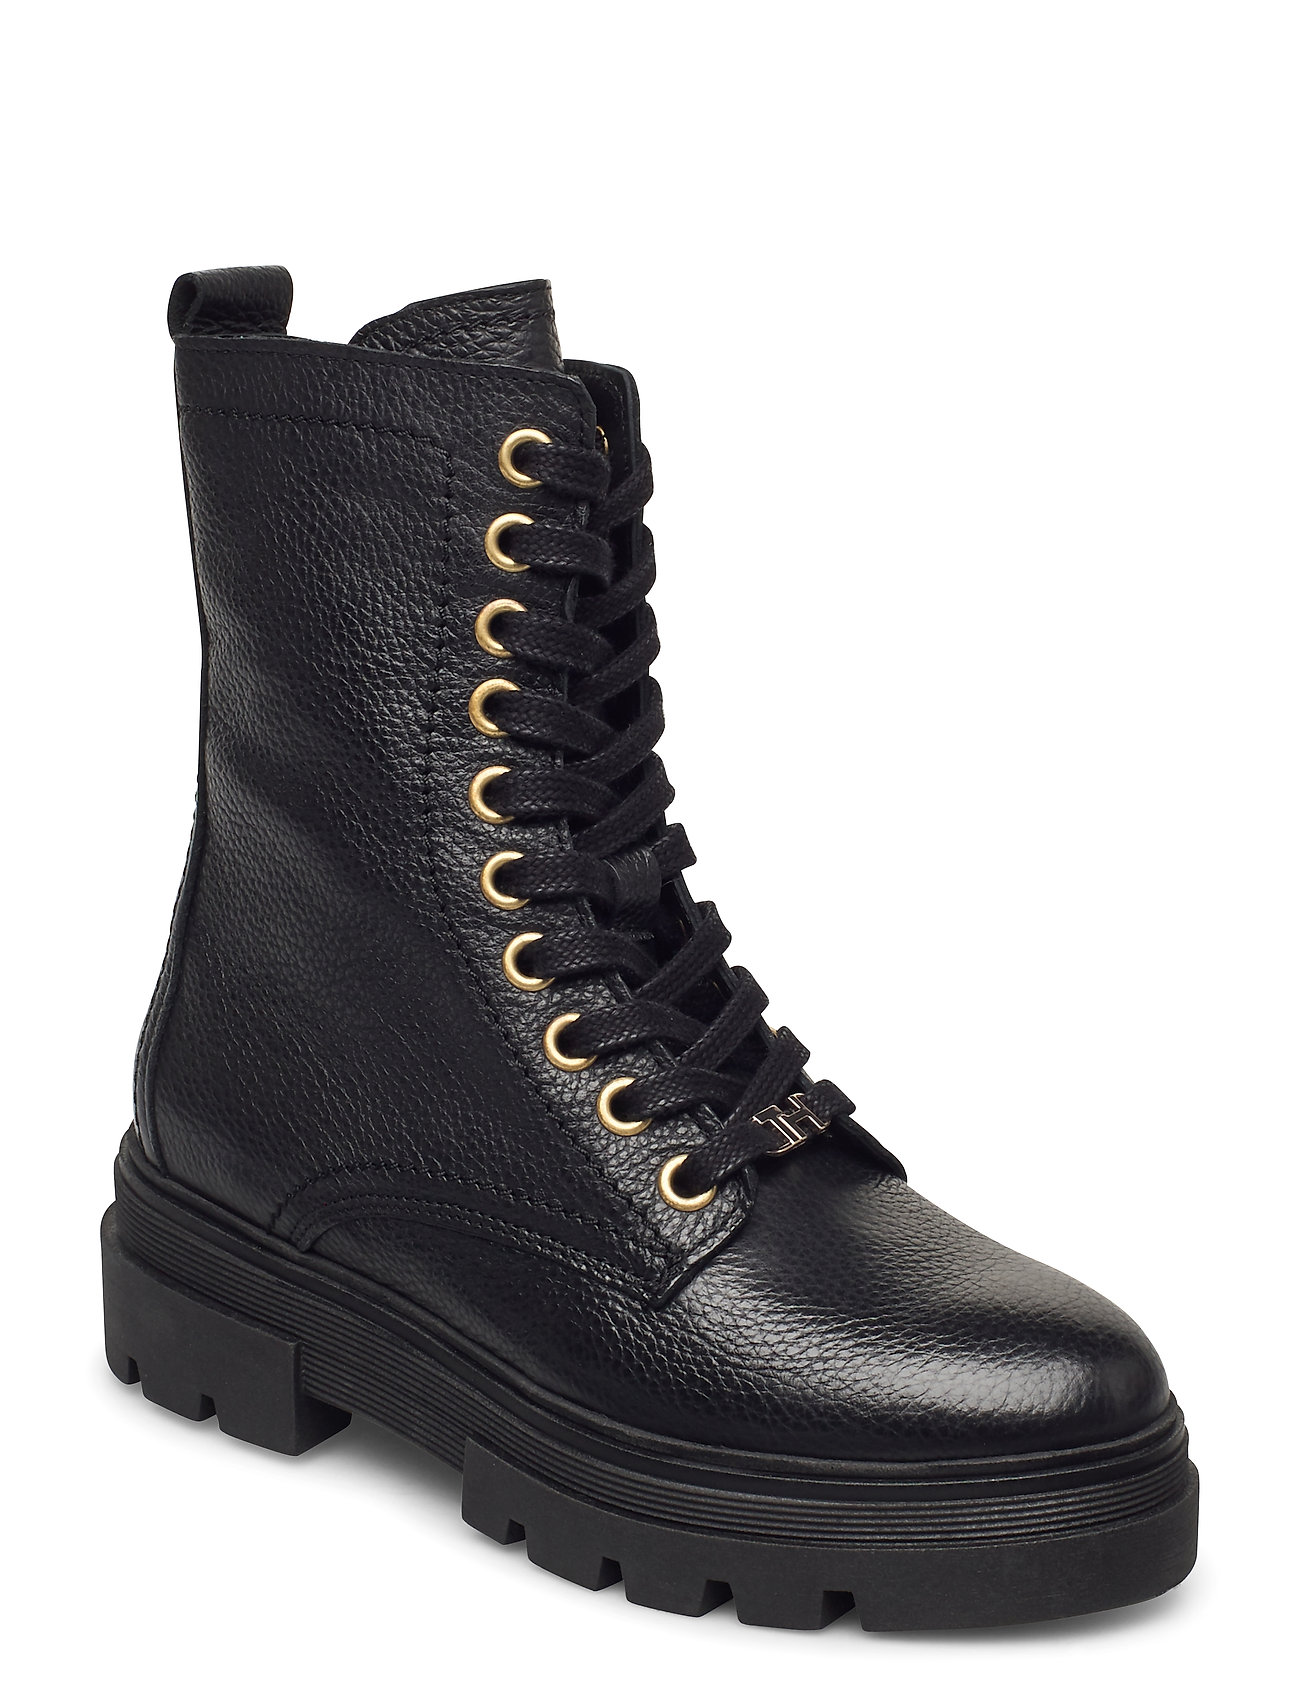 Image of Rugged Classic Bootie Shoes Boots Ankle Boots Ankle Boot - Flat Sort Tommy Hilfiger (3452229167)